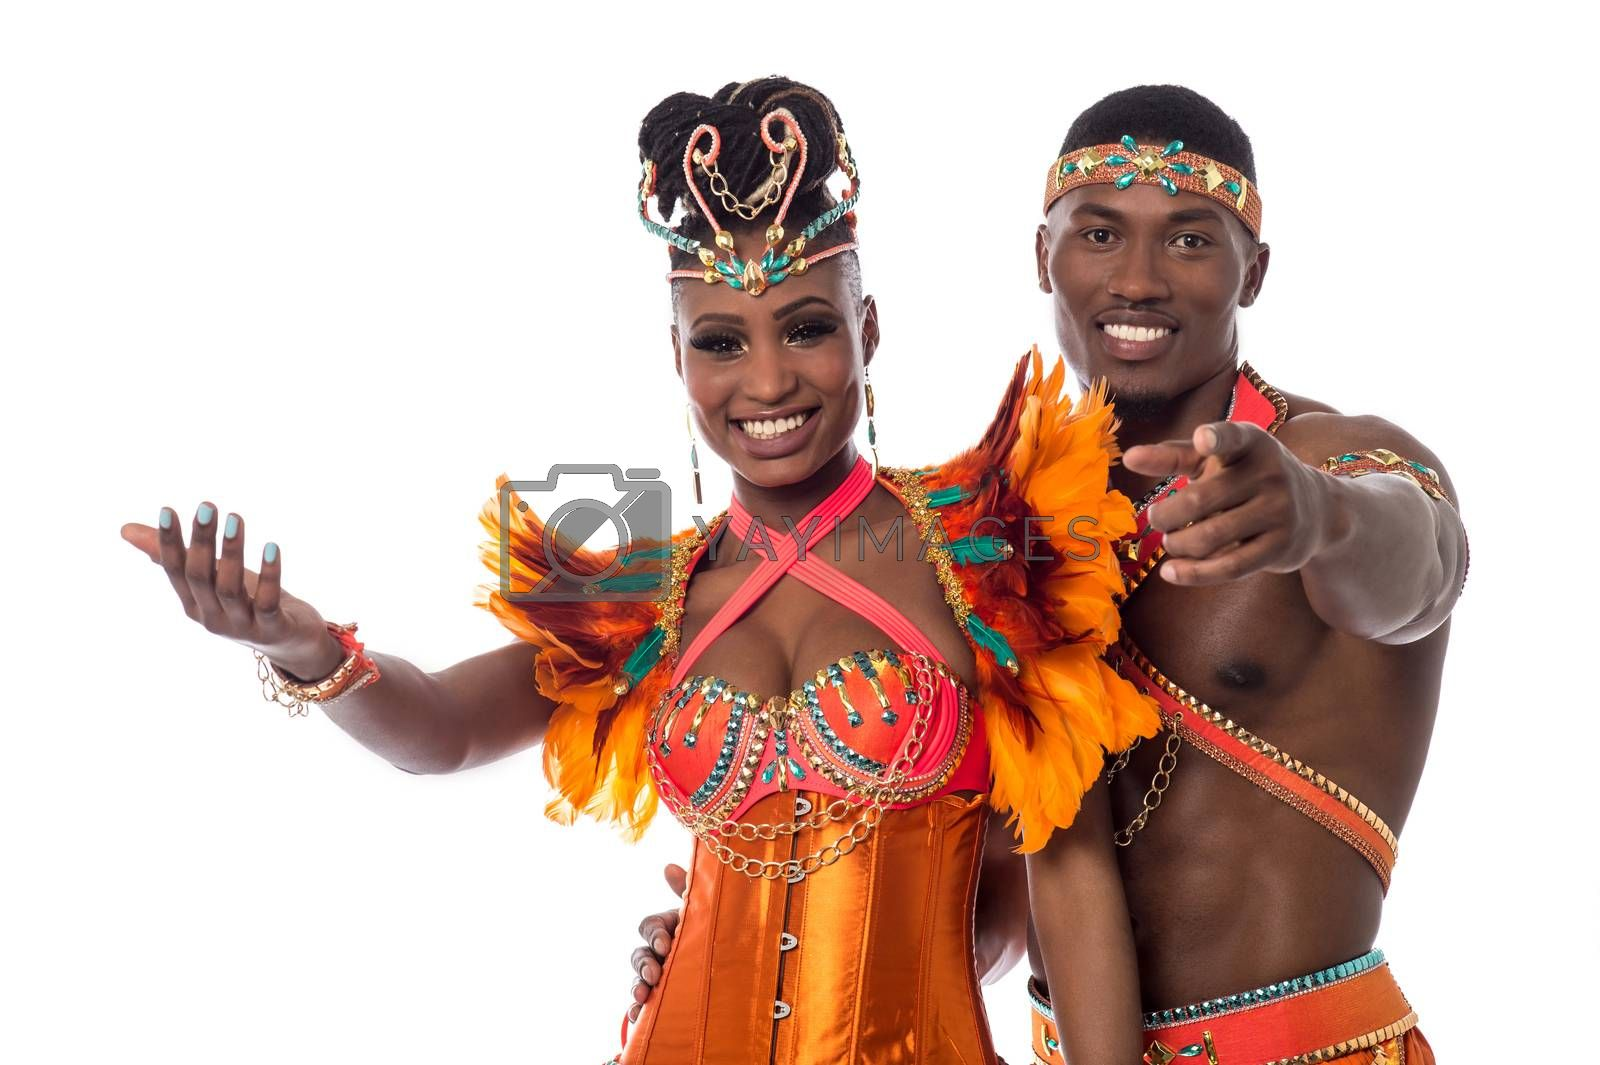 Happy samba dancers posing together on white background